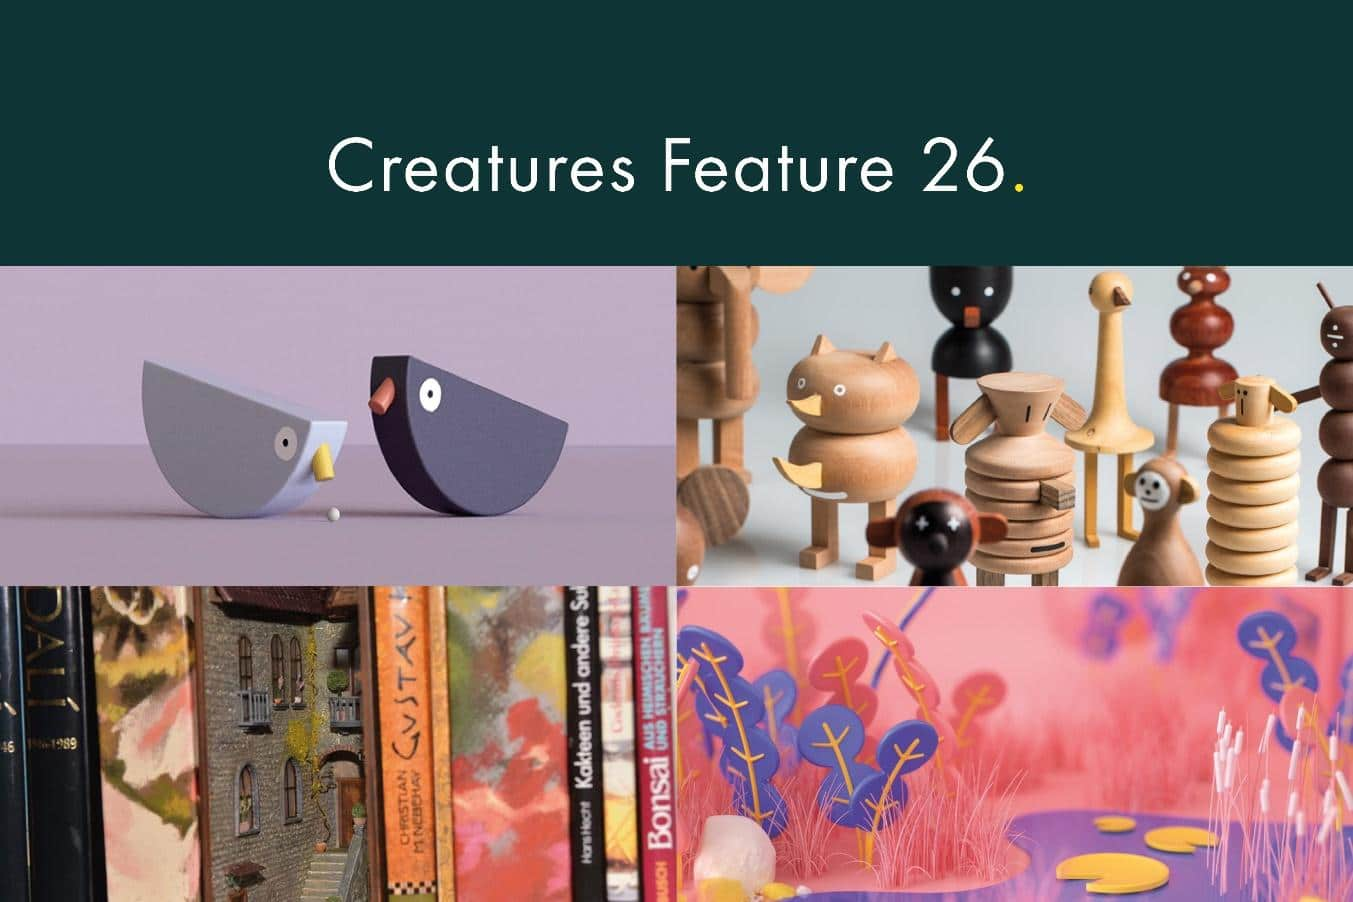 Creature Feature 26 header image